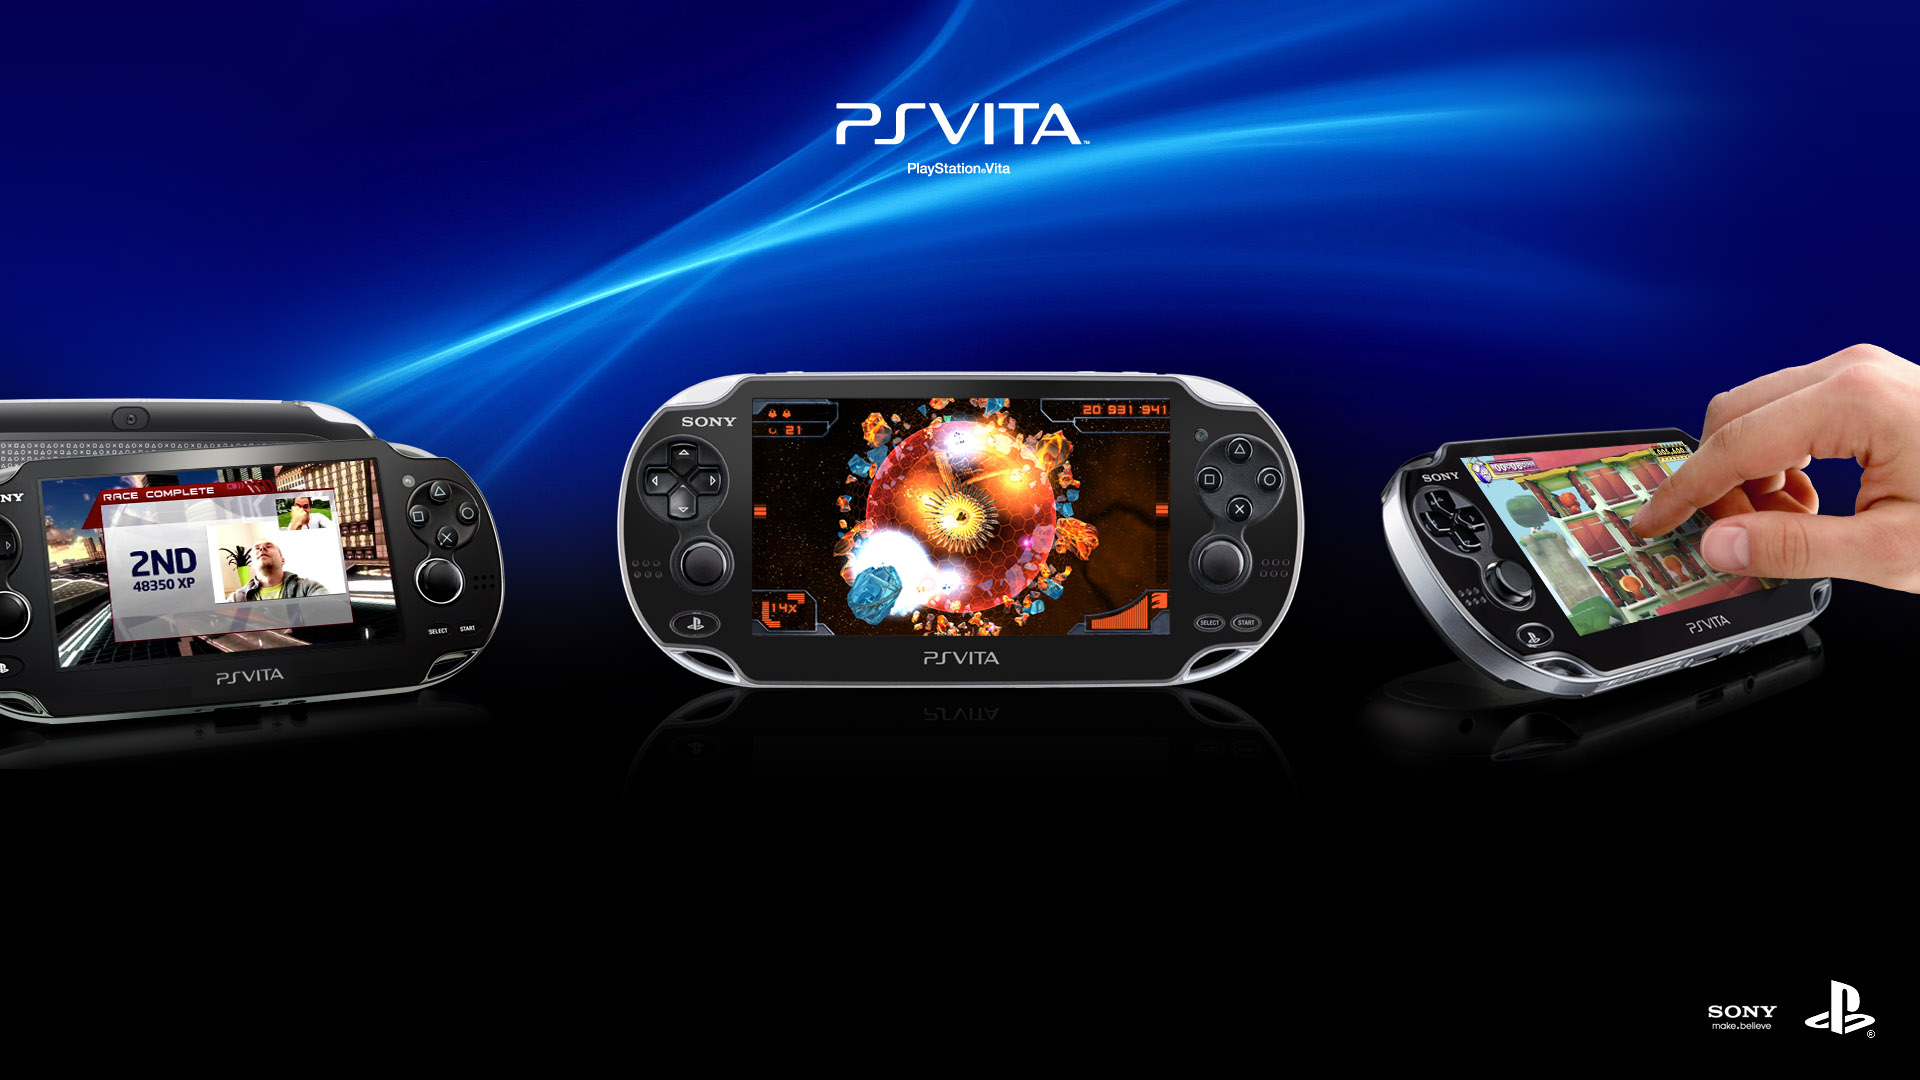 Sony Ps Vita Games : Sony ordered to refund ps vita owners for 'deceptive